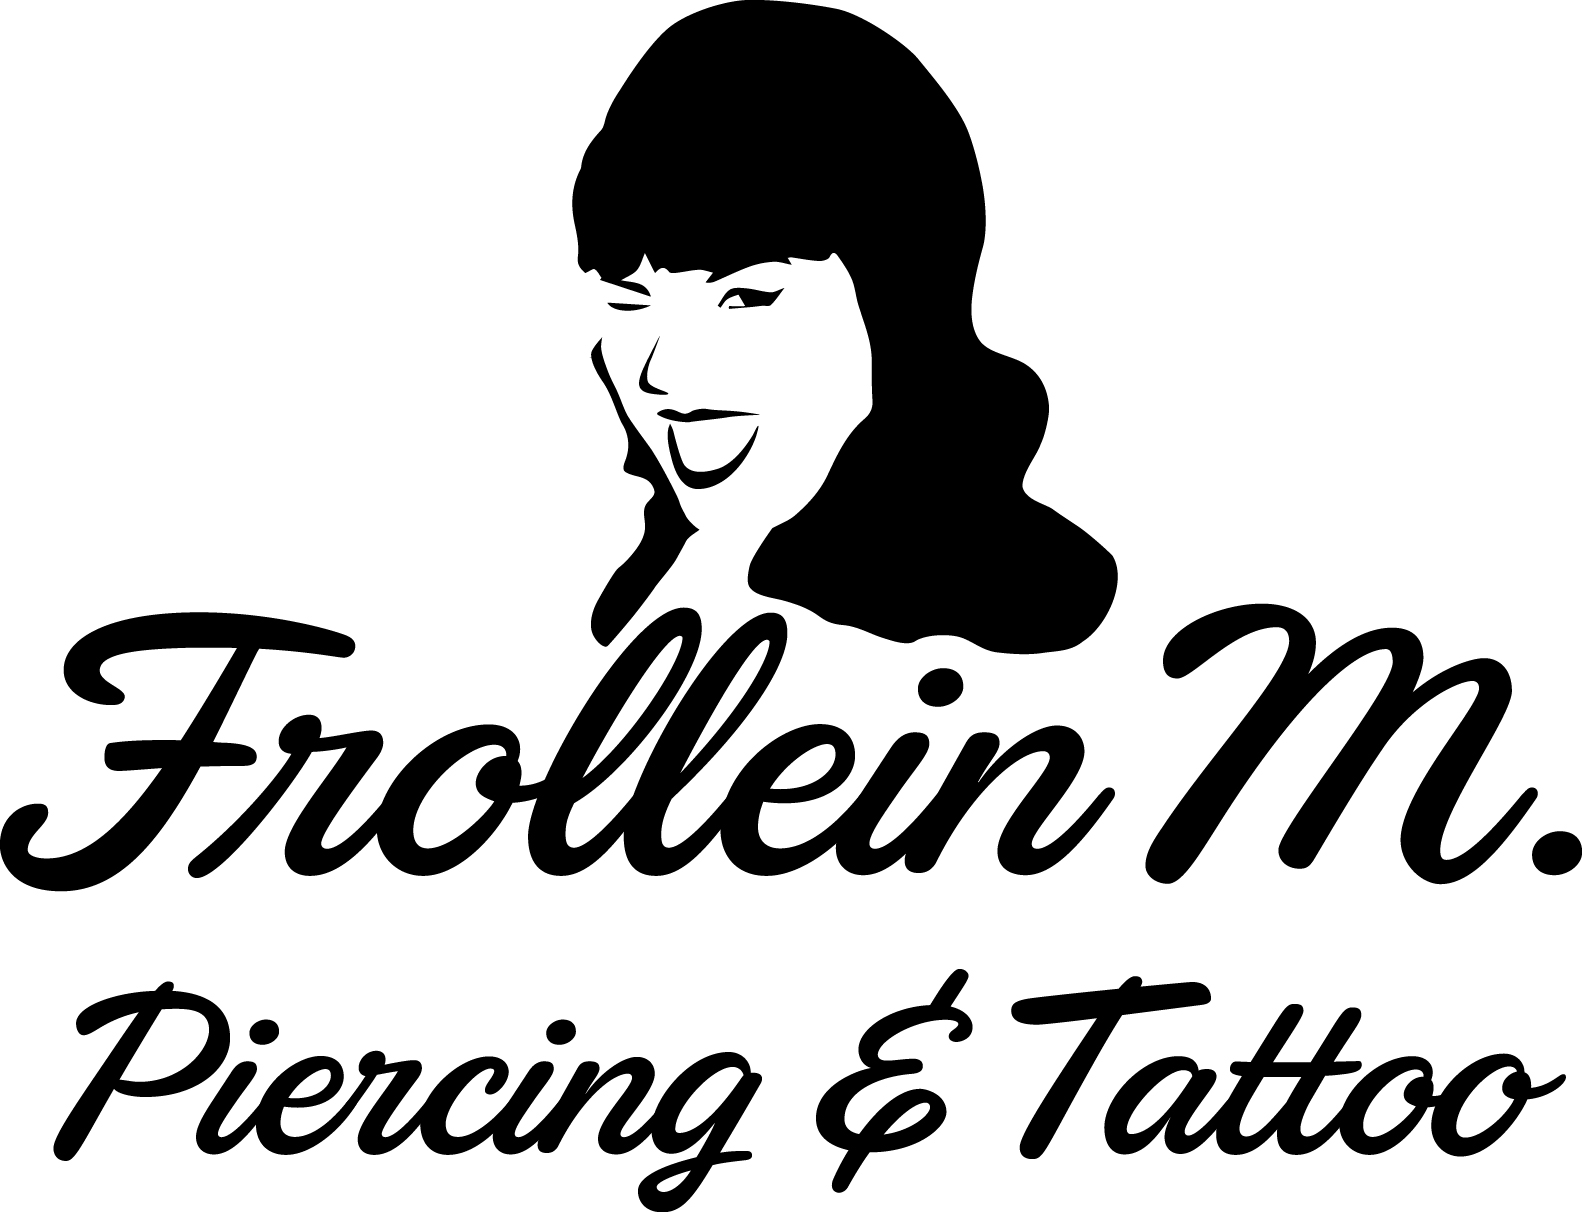 Frollein M. Piercing & Tattoostudio Hamburg